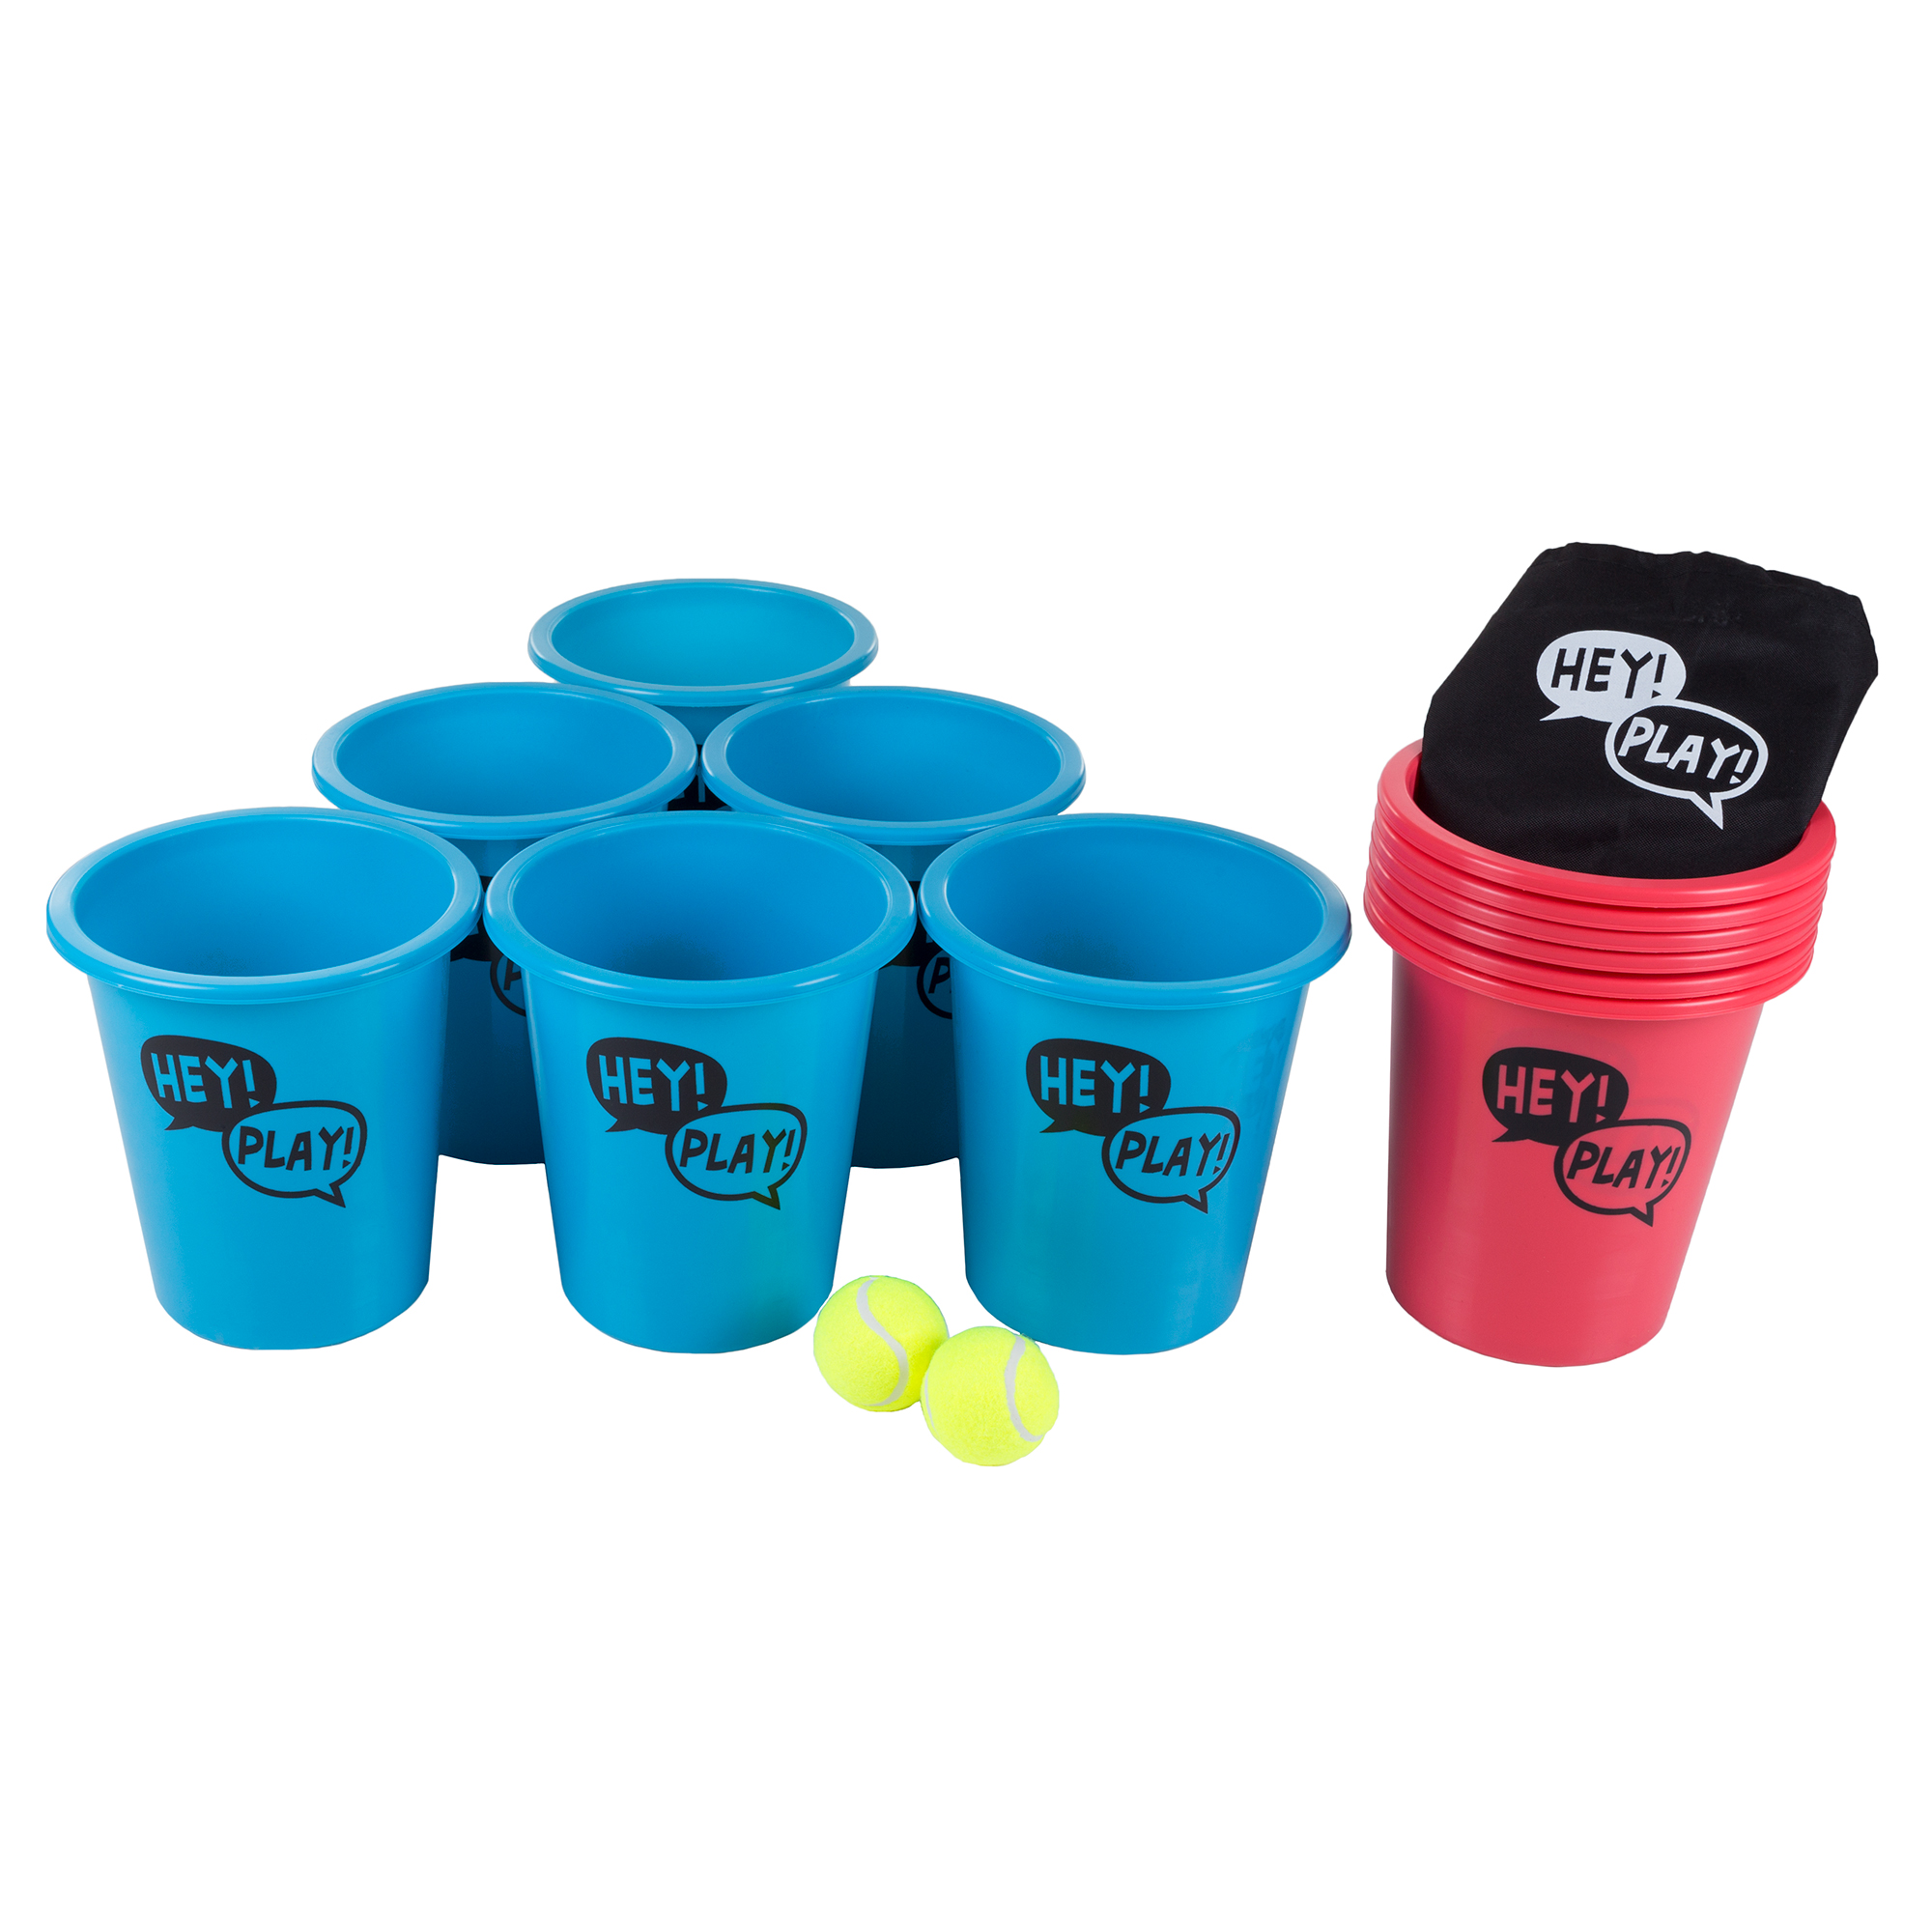 Large Beer Pong Outdoor Game Set with 12 Buckets, 2 Balls, Tote Bag by Hey! Play!